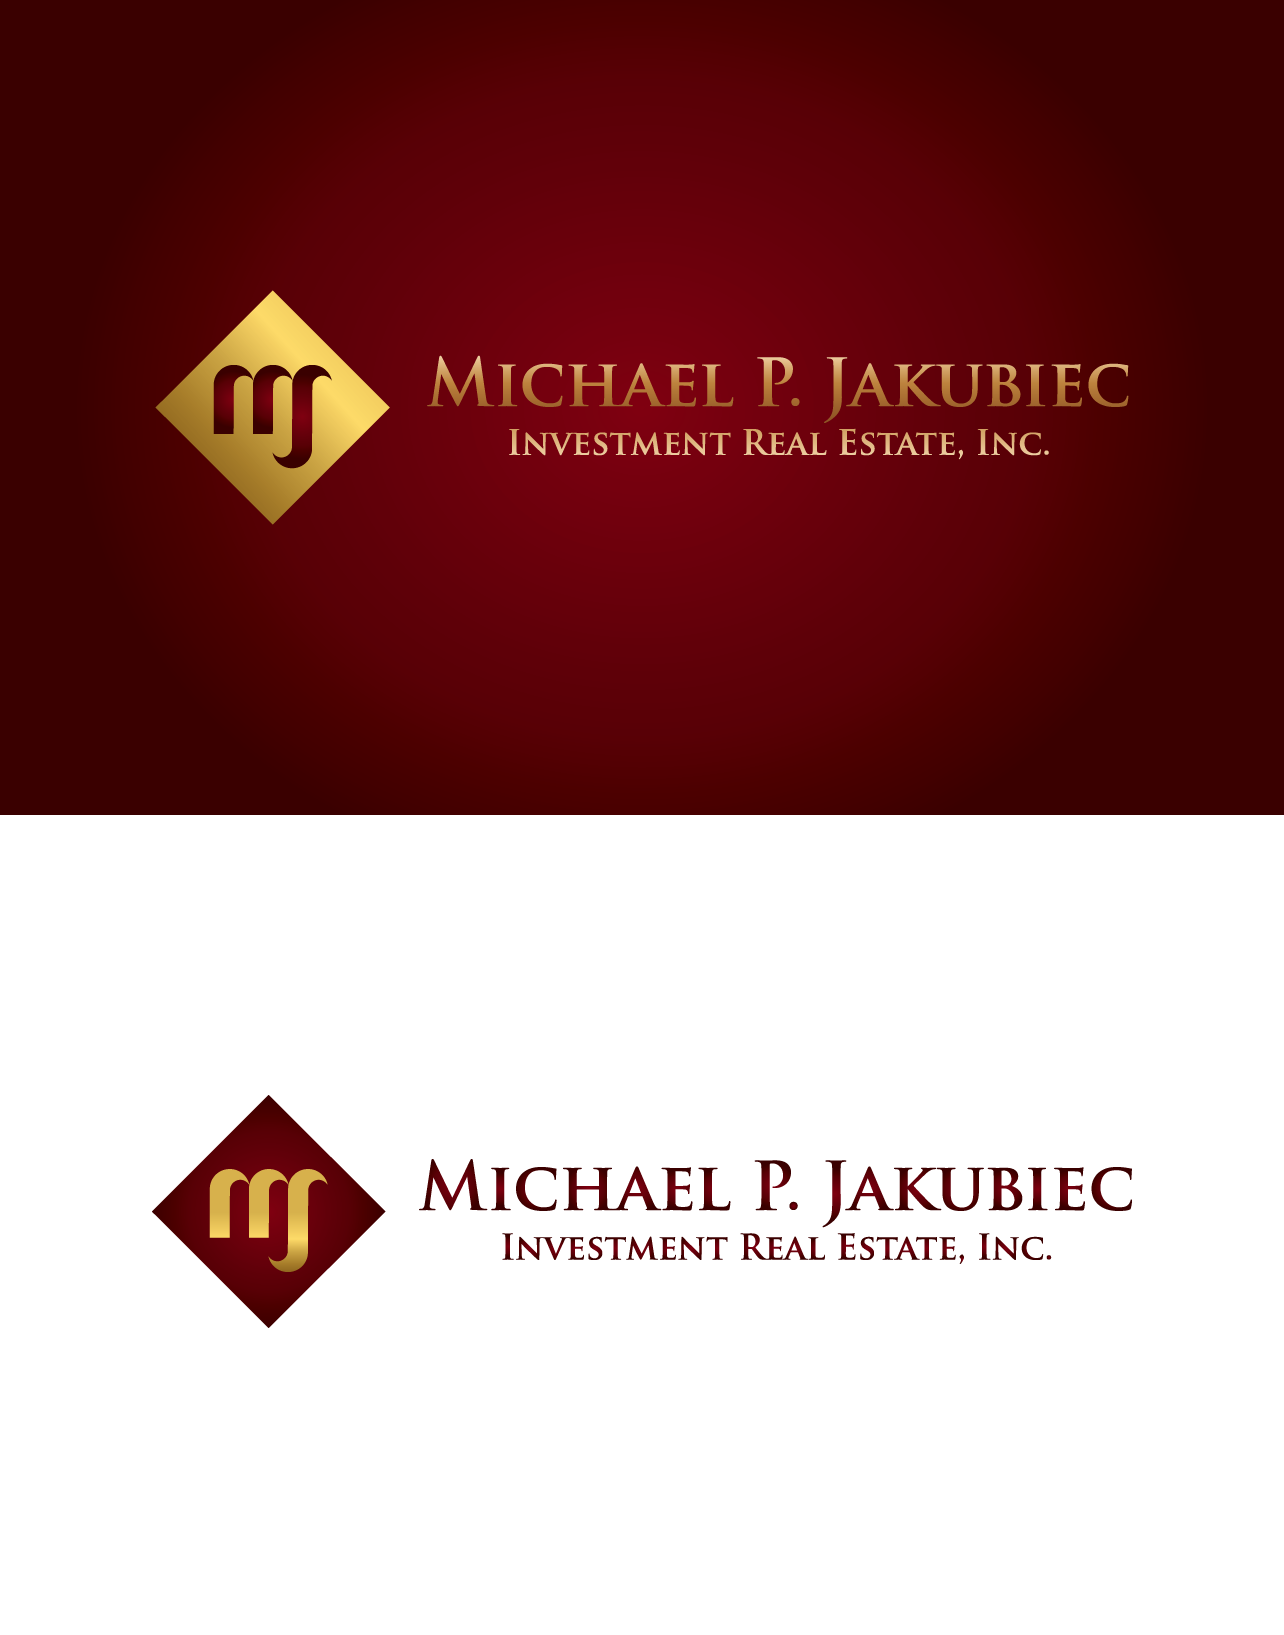 Logo Design by luna - Entry No. 108 in the Logo Design Contest New Logo Design for Michael P. Jakubiec Investment Real Estate, Inc..